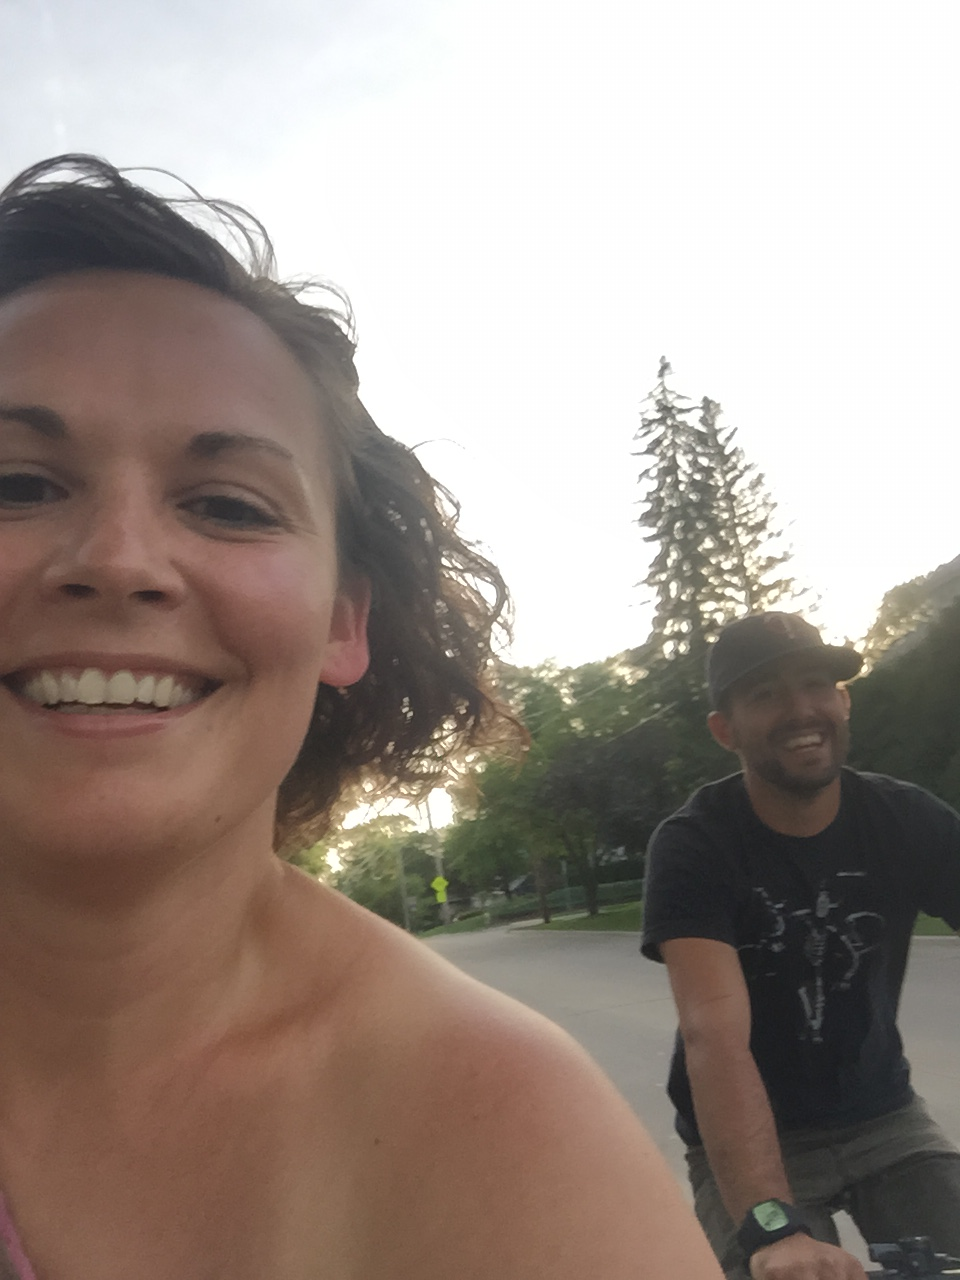 DATE NIGHT ON BIKES  |  CEDAR FALLS, IA